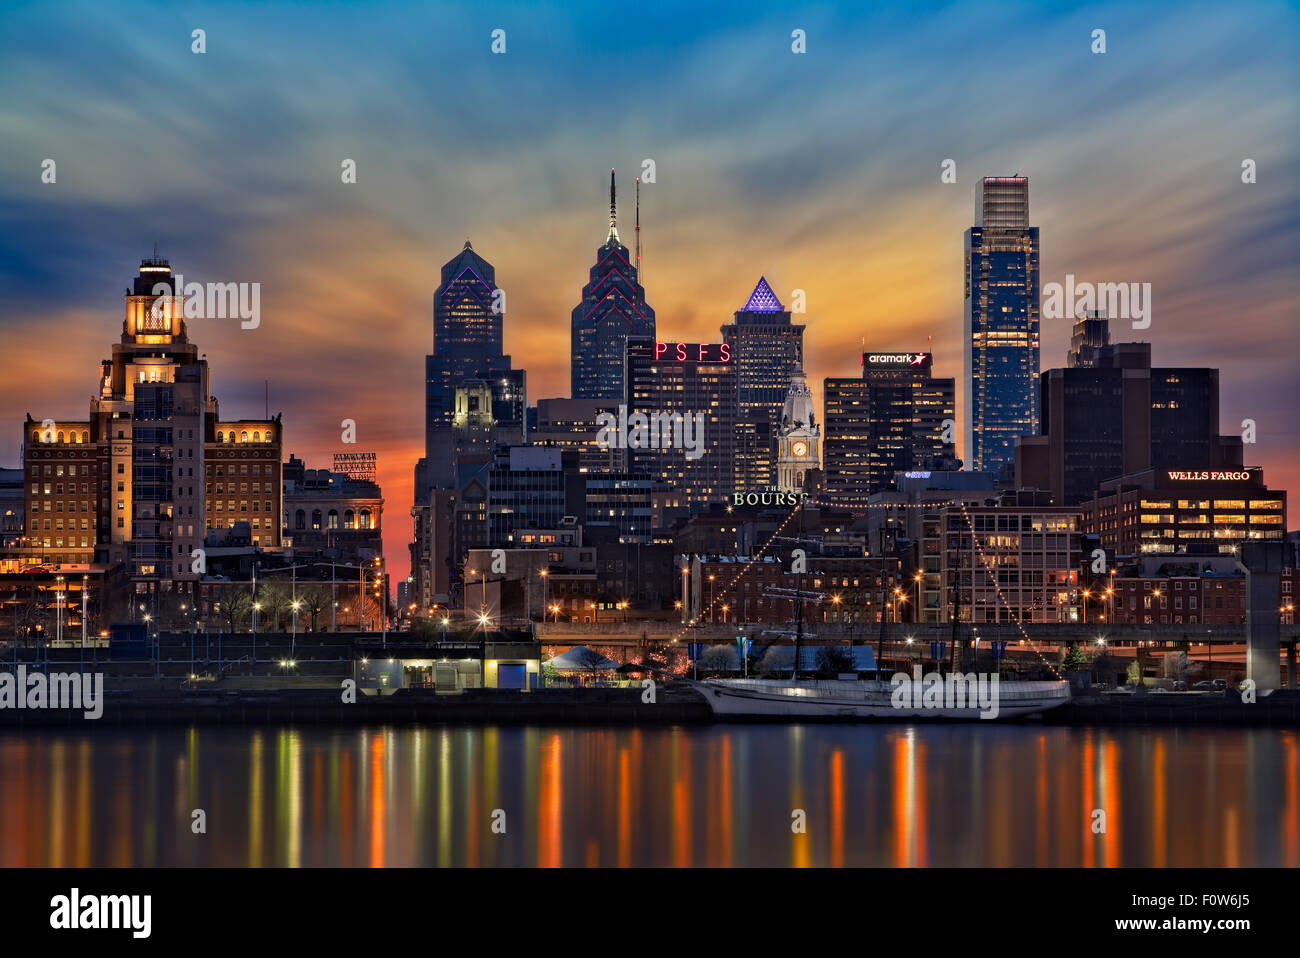 A view to the Philadelphia Skyline shortly after sunset. - Stock Image